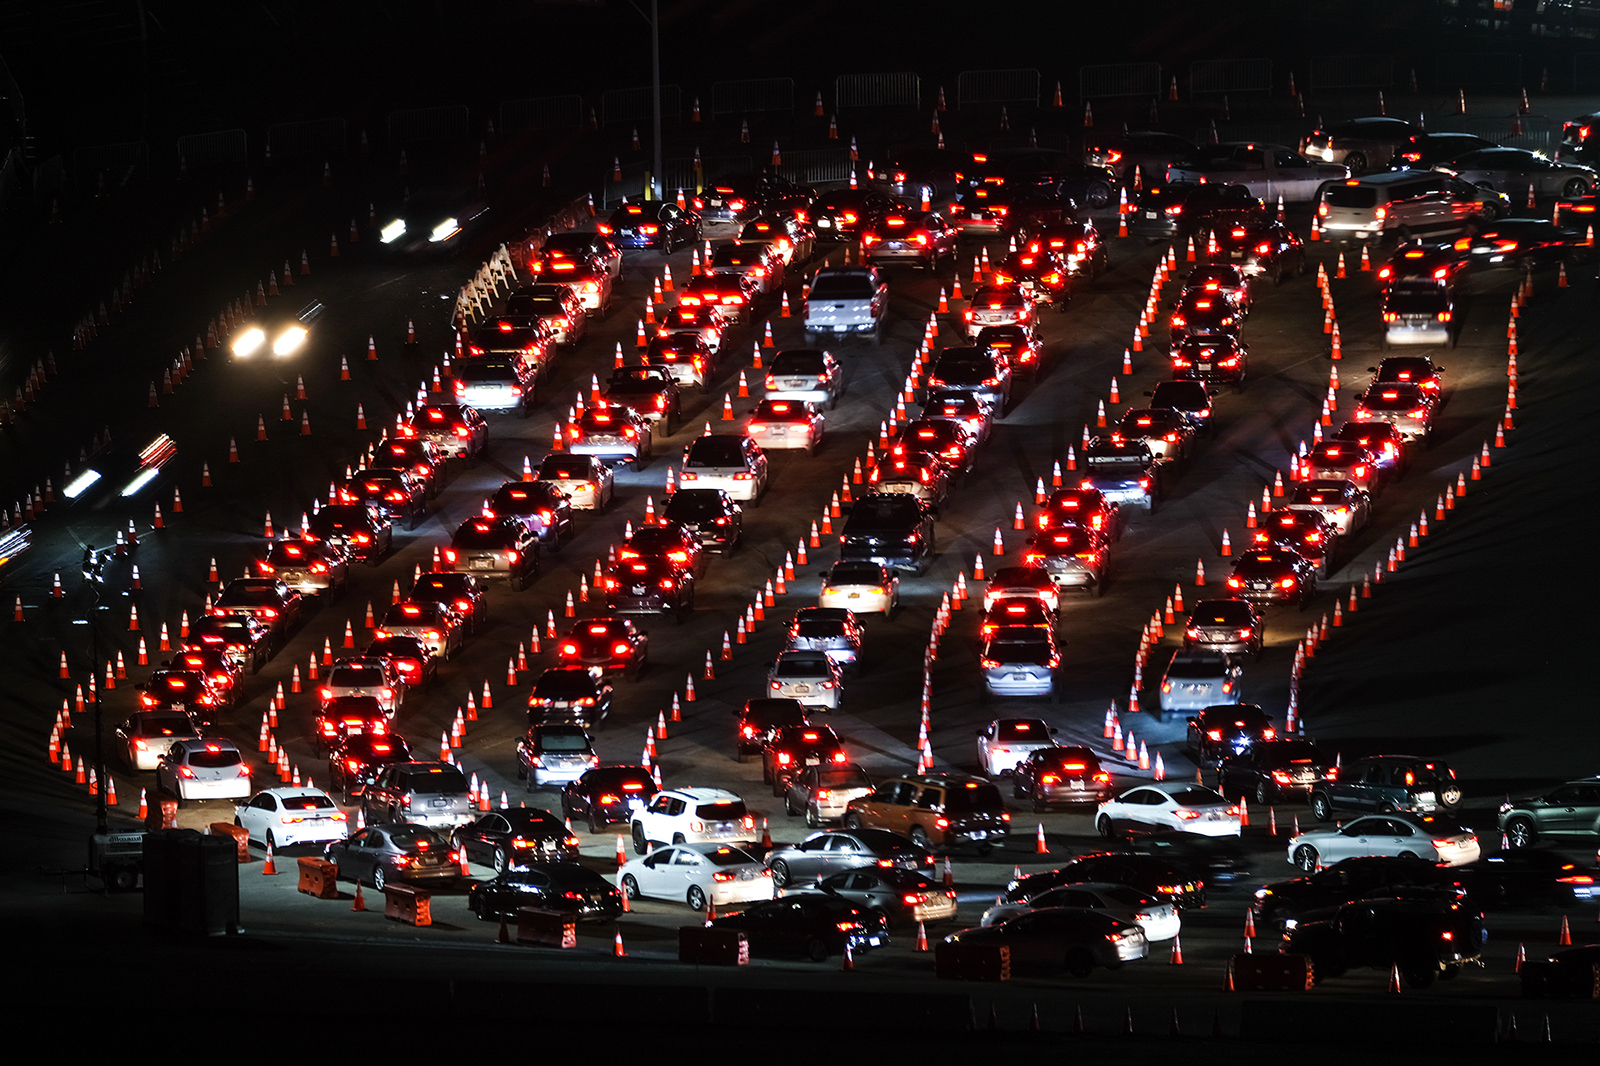 Motorists line up to take a coronavirus test in a parking lot at Dodger Stadium on Monday, January 4, in Los Angeles.